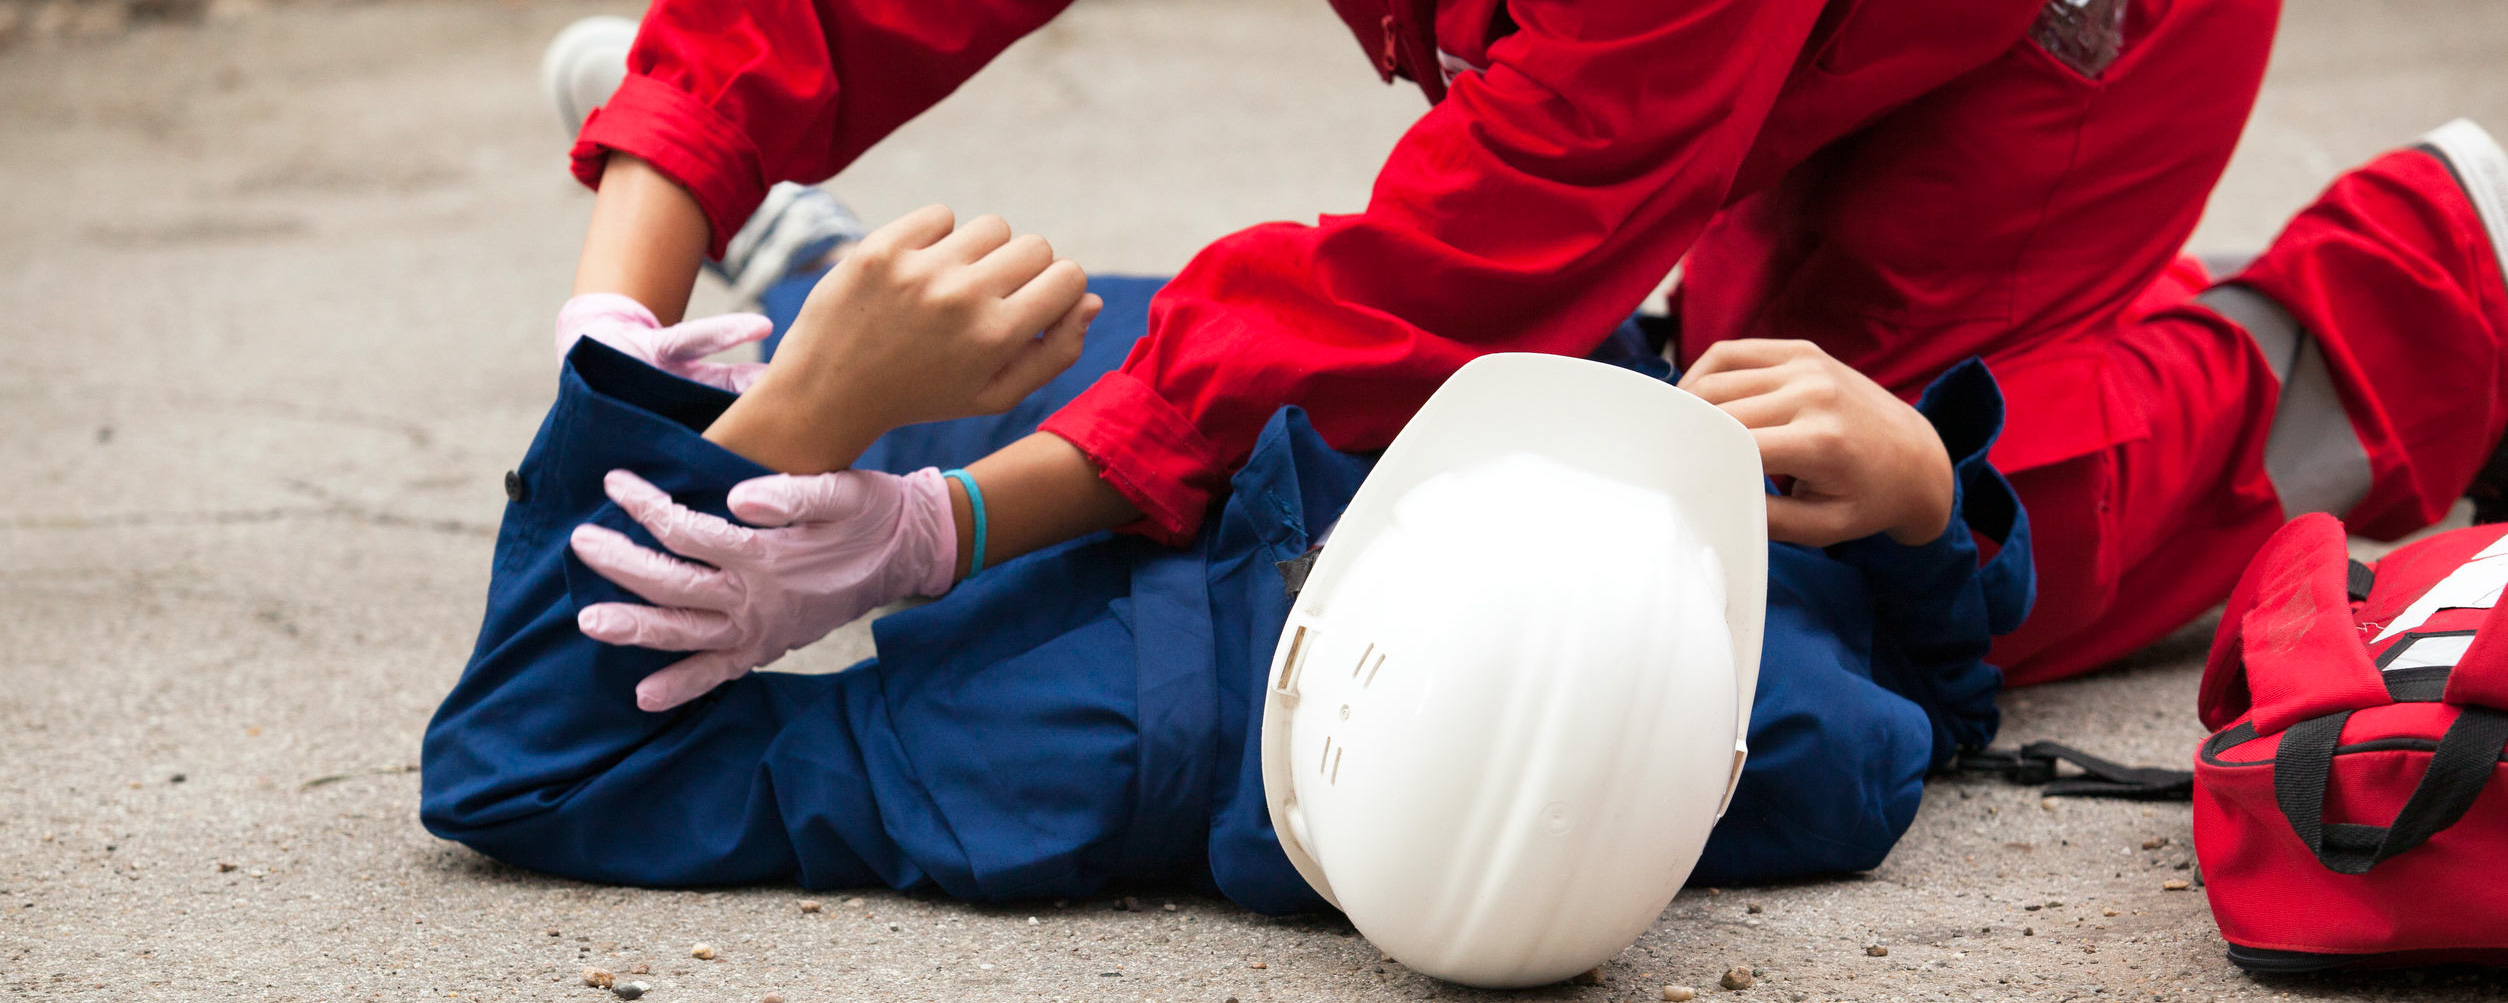 Handling Workplace Injury